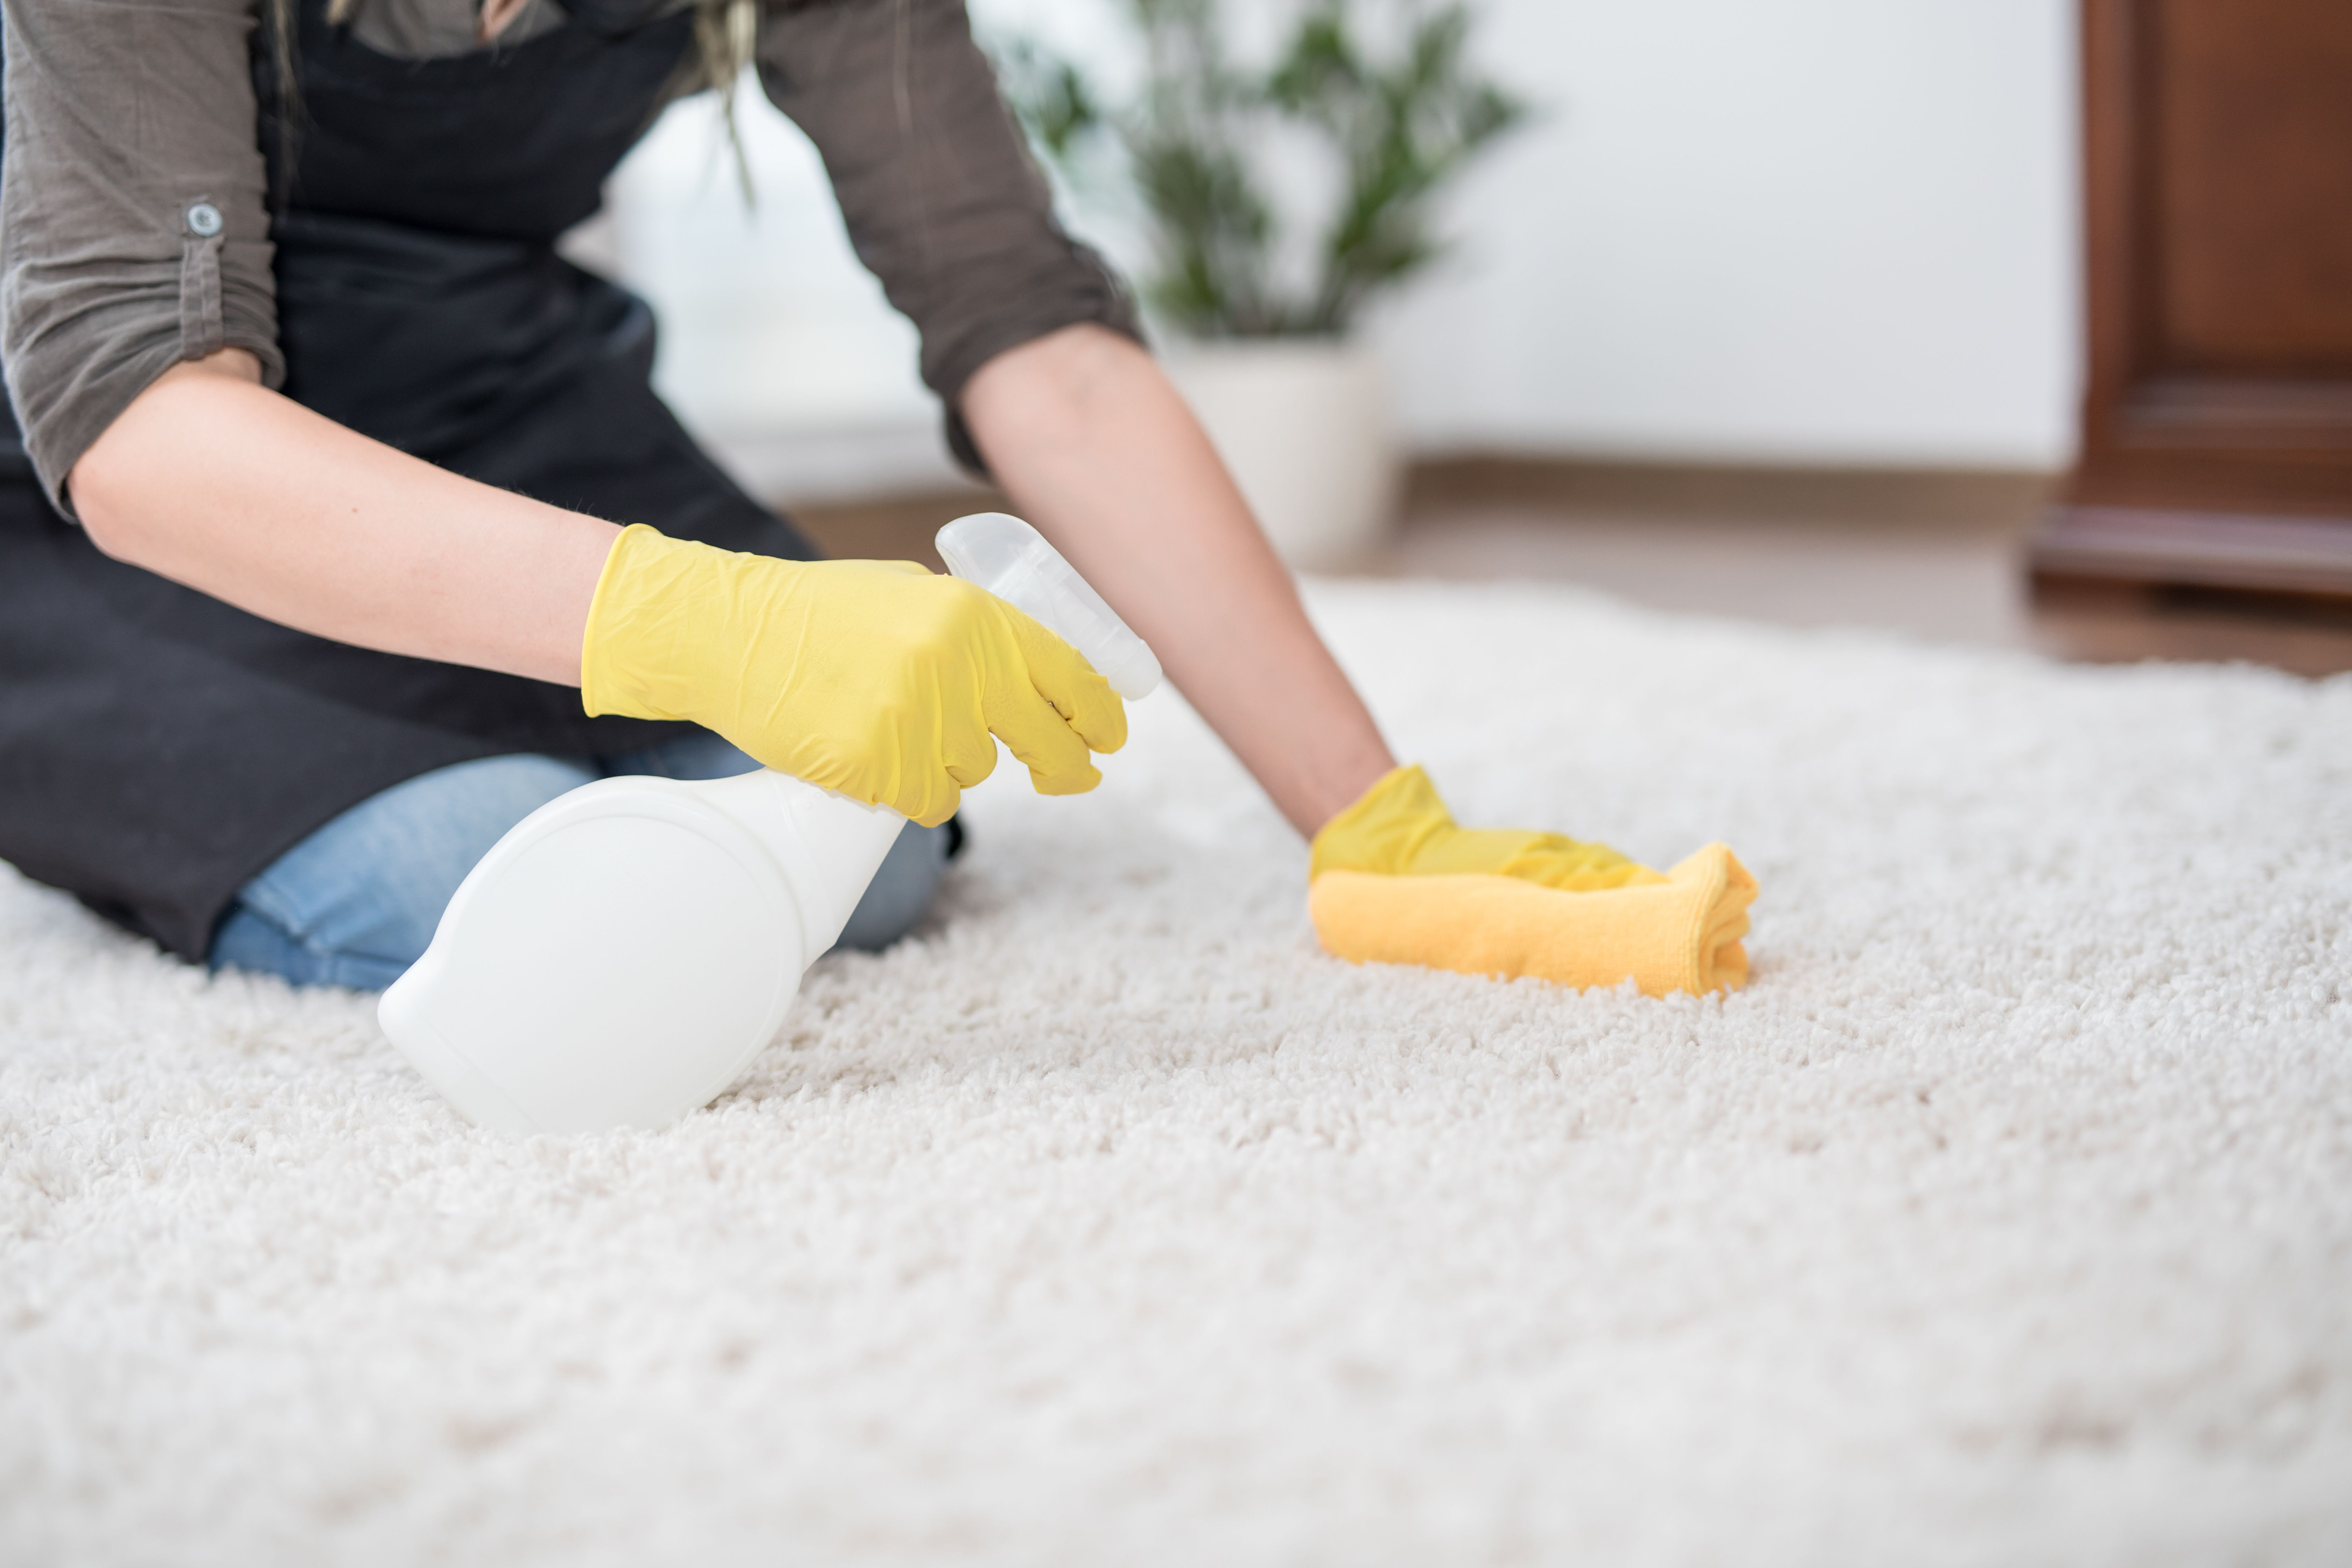 How To Dry Carpet After Leak